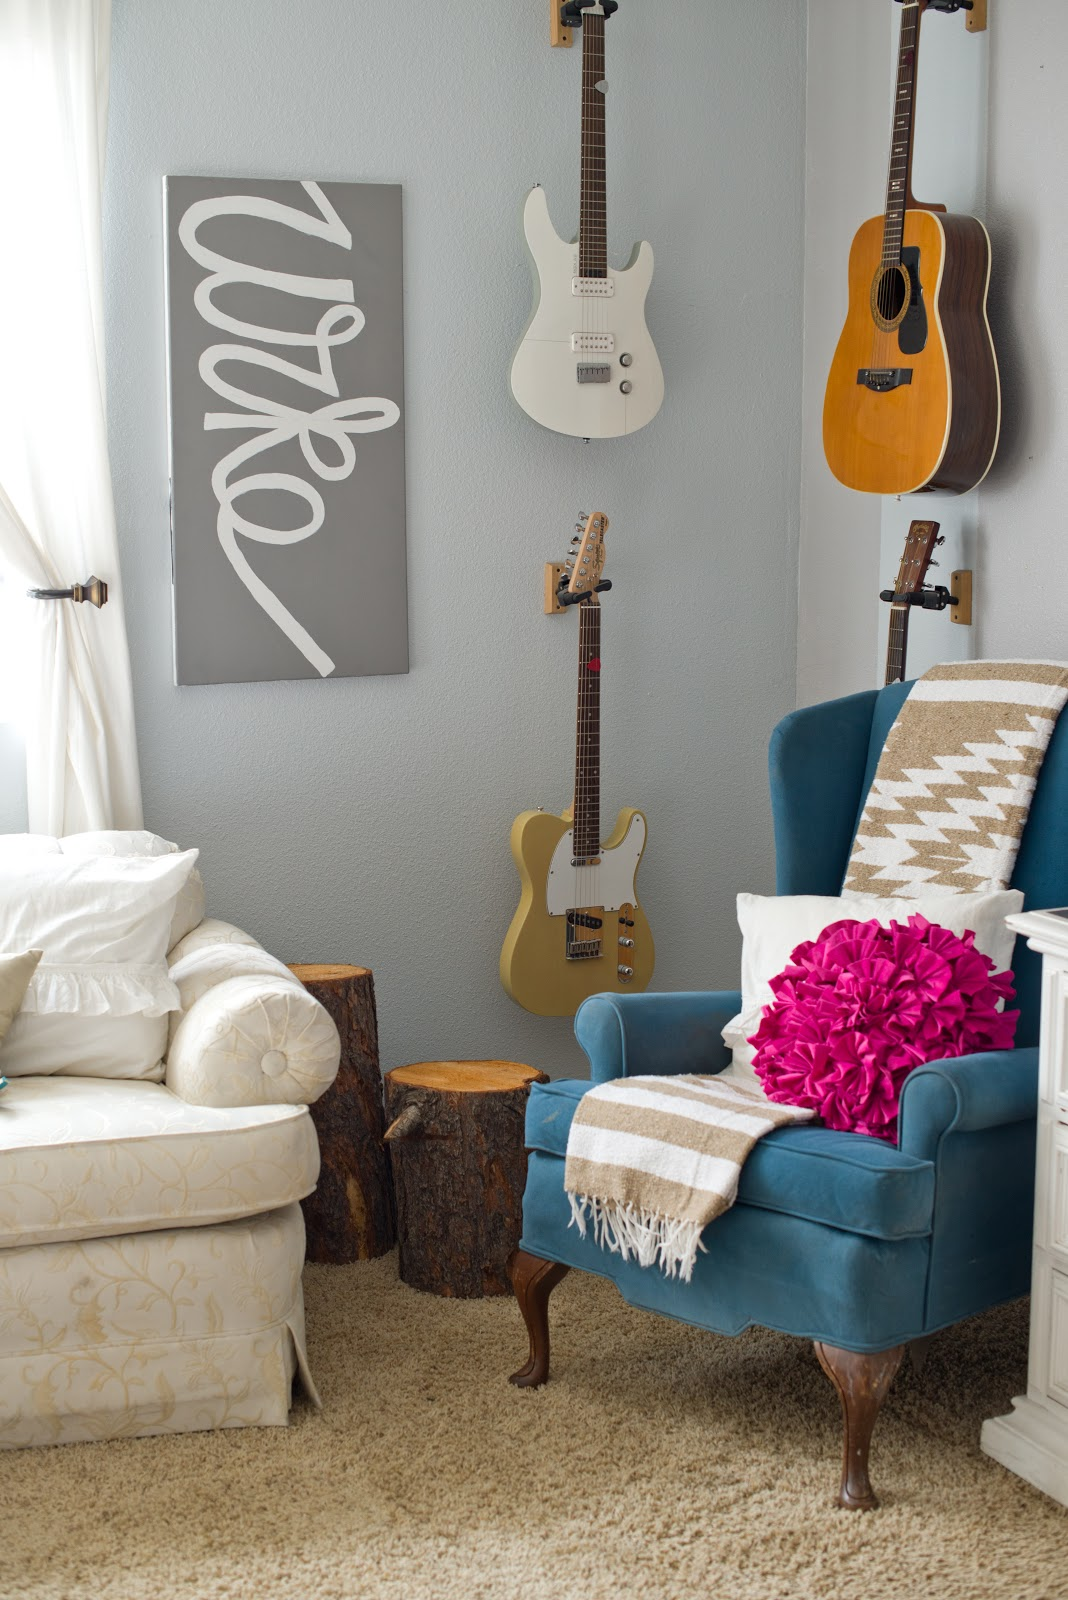 Guitar Decor For Bedroom Domestic Fashionista A More Simple And Modern Living Room